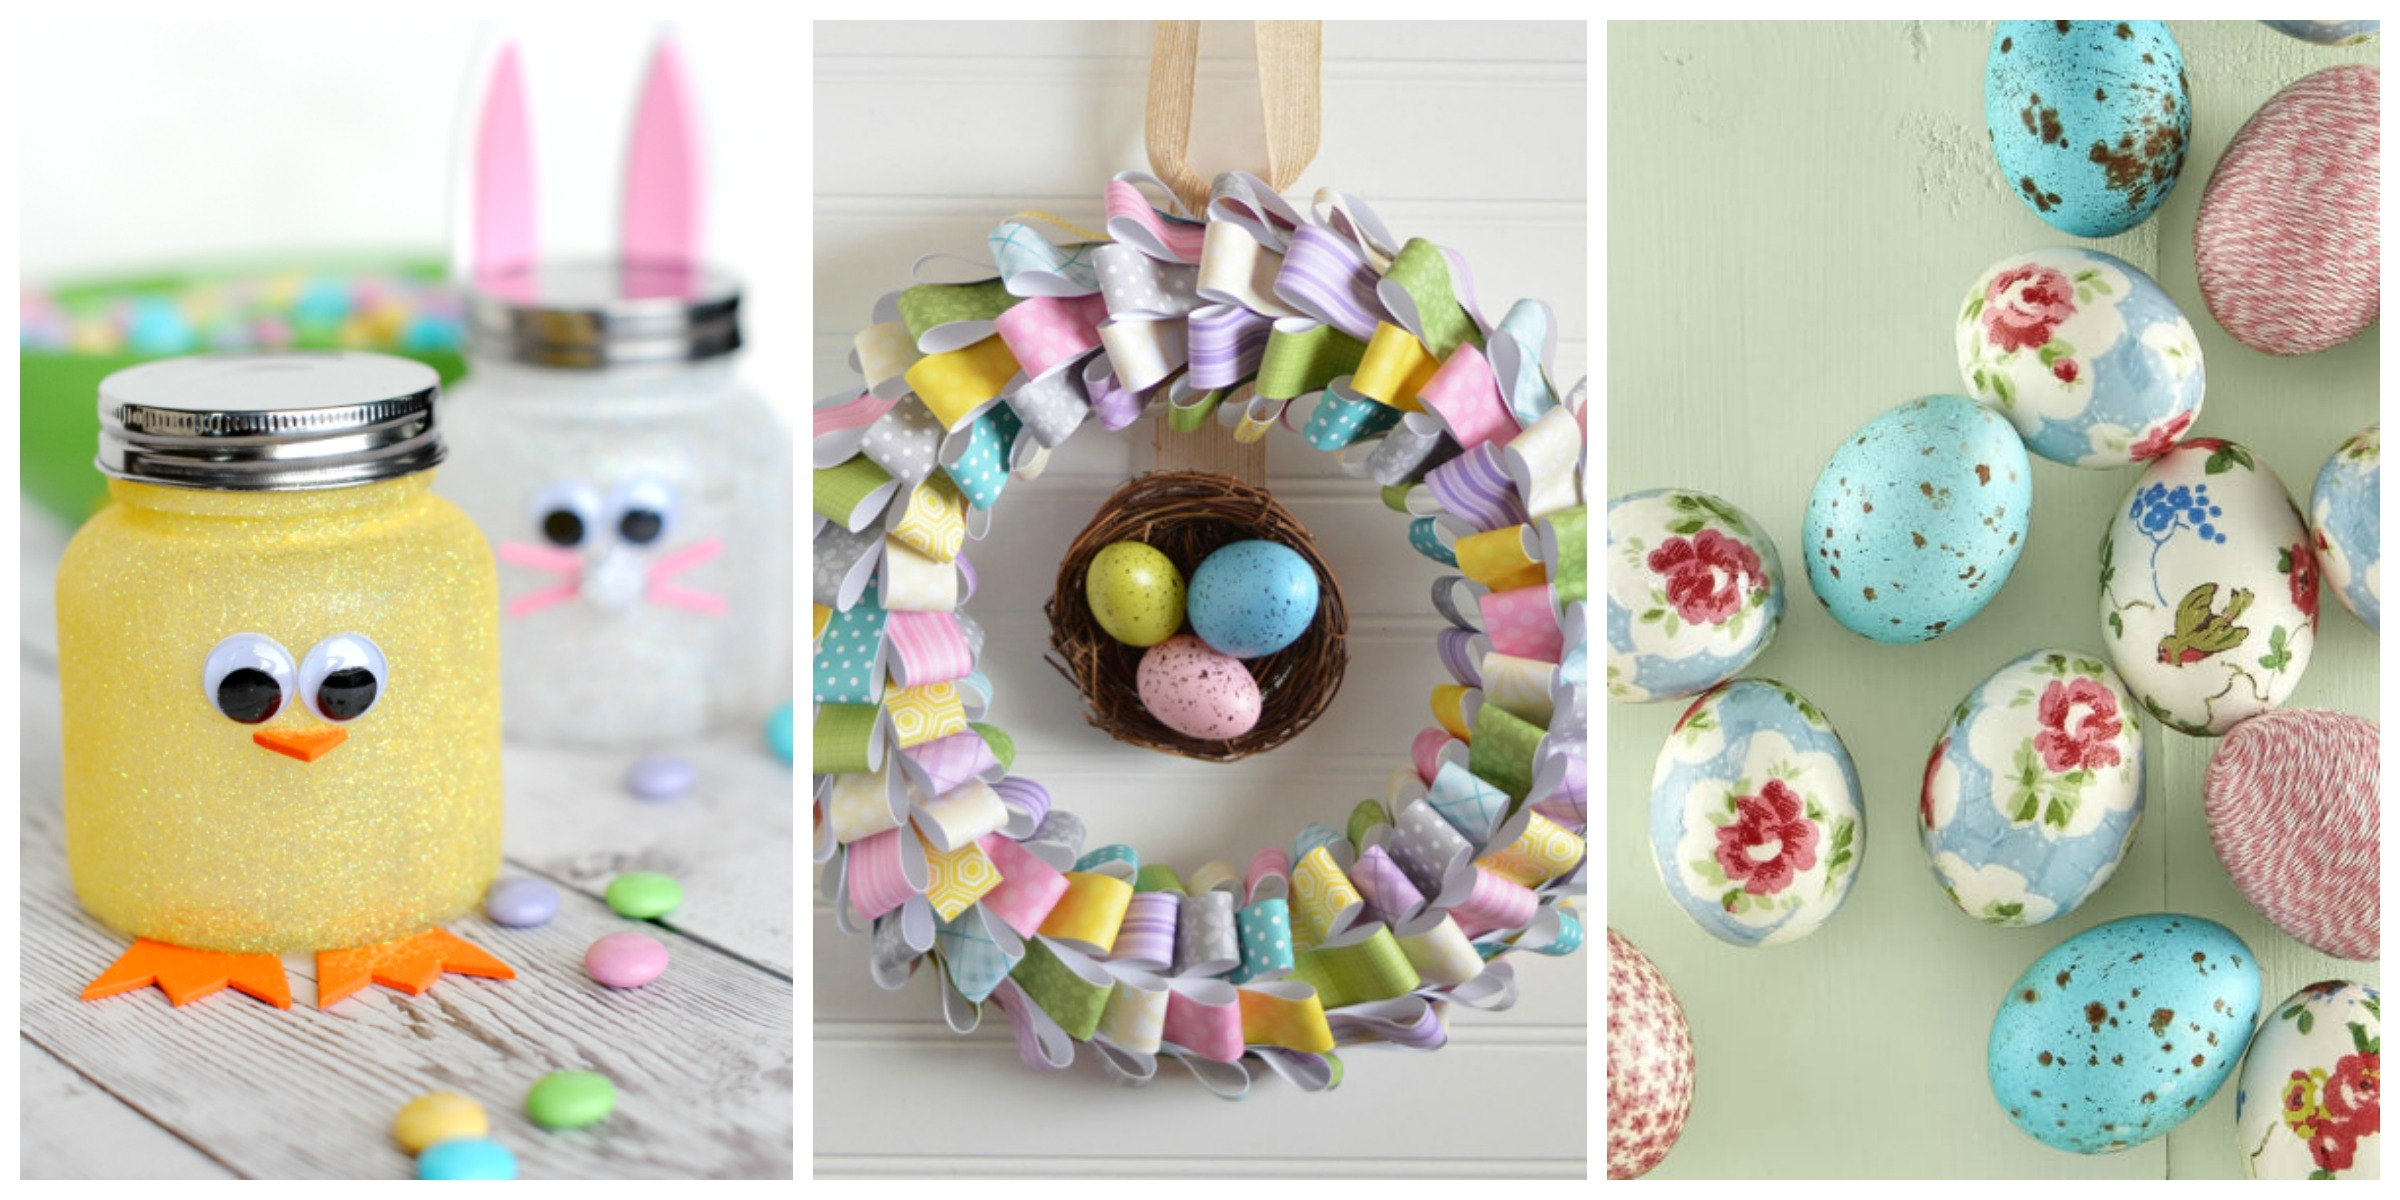 60 Easy Easter Crafts Ideas For Easter DIY Decorations Gifts